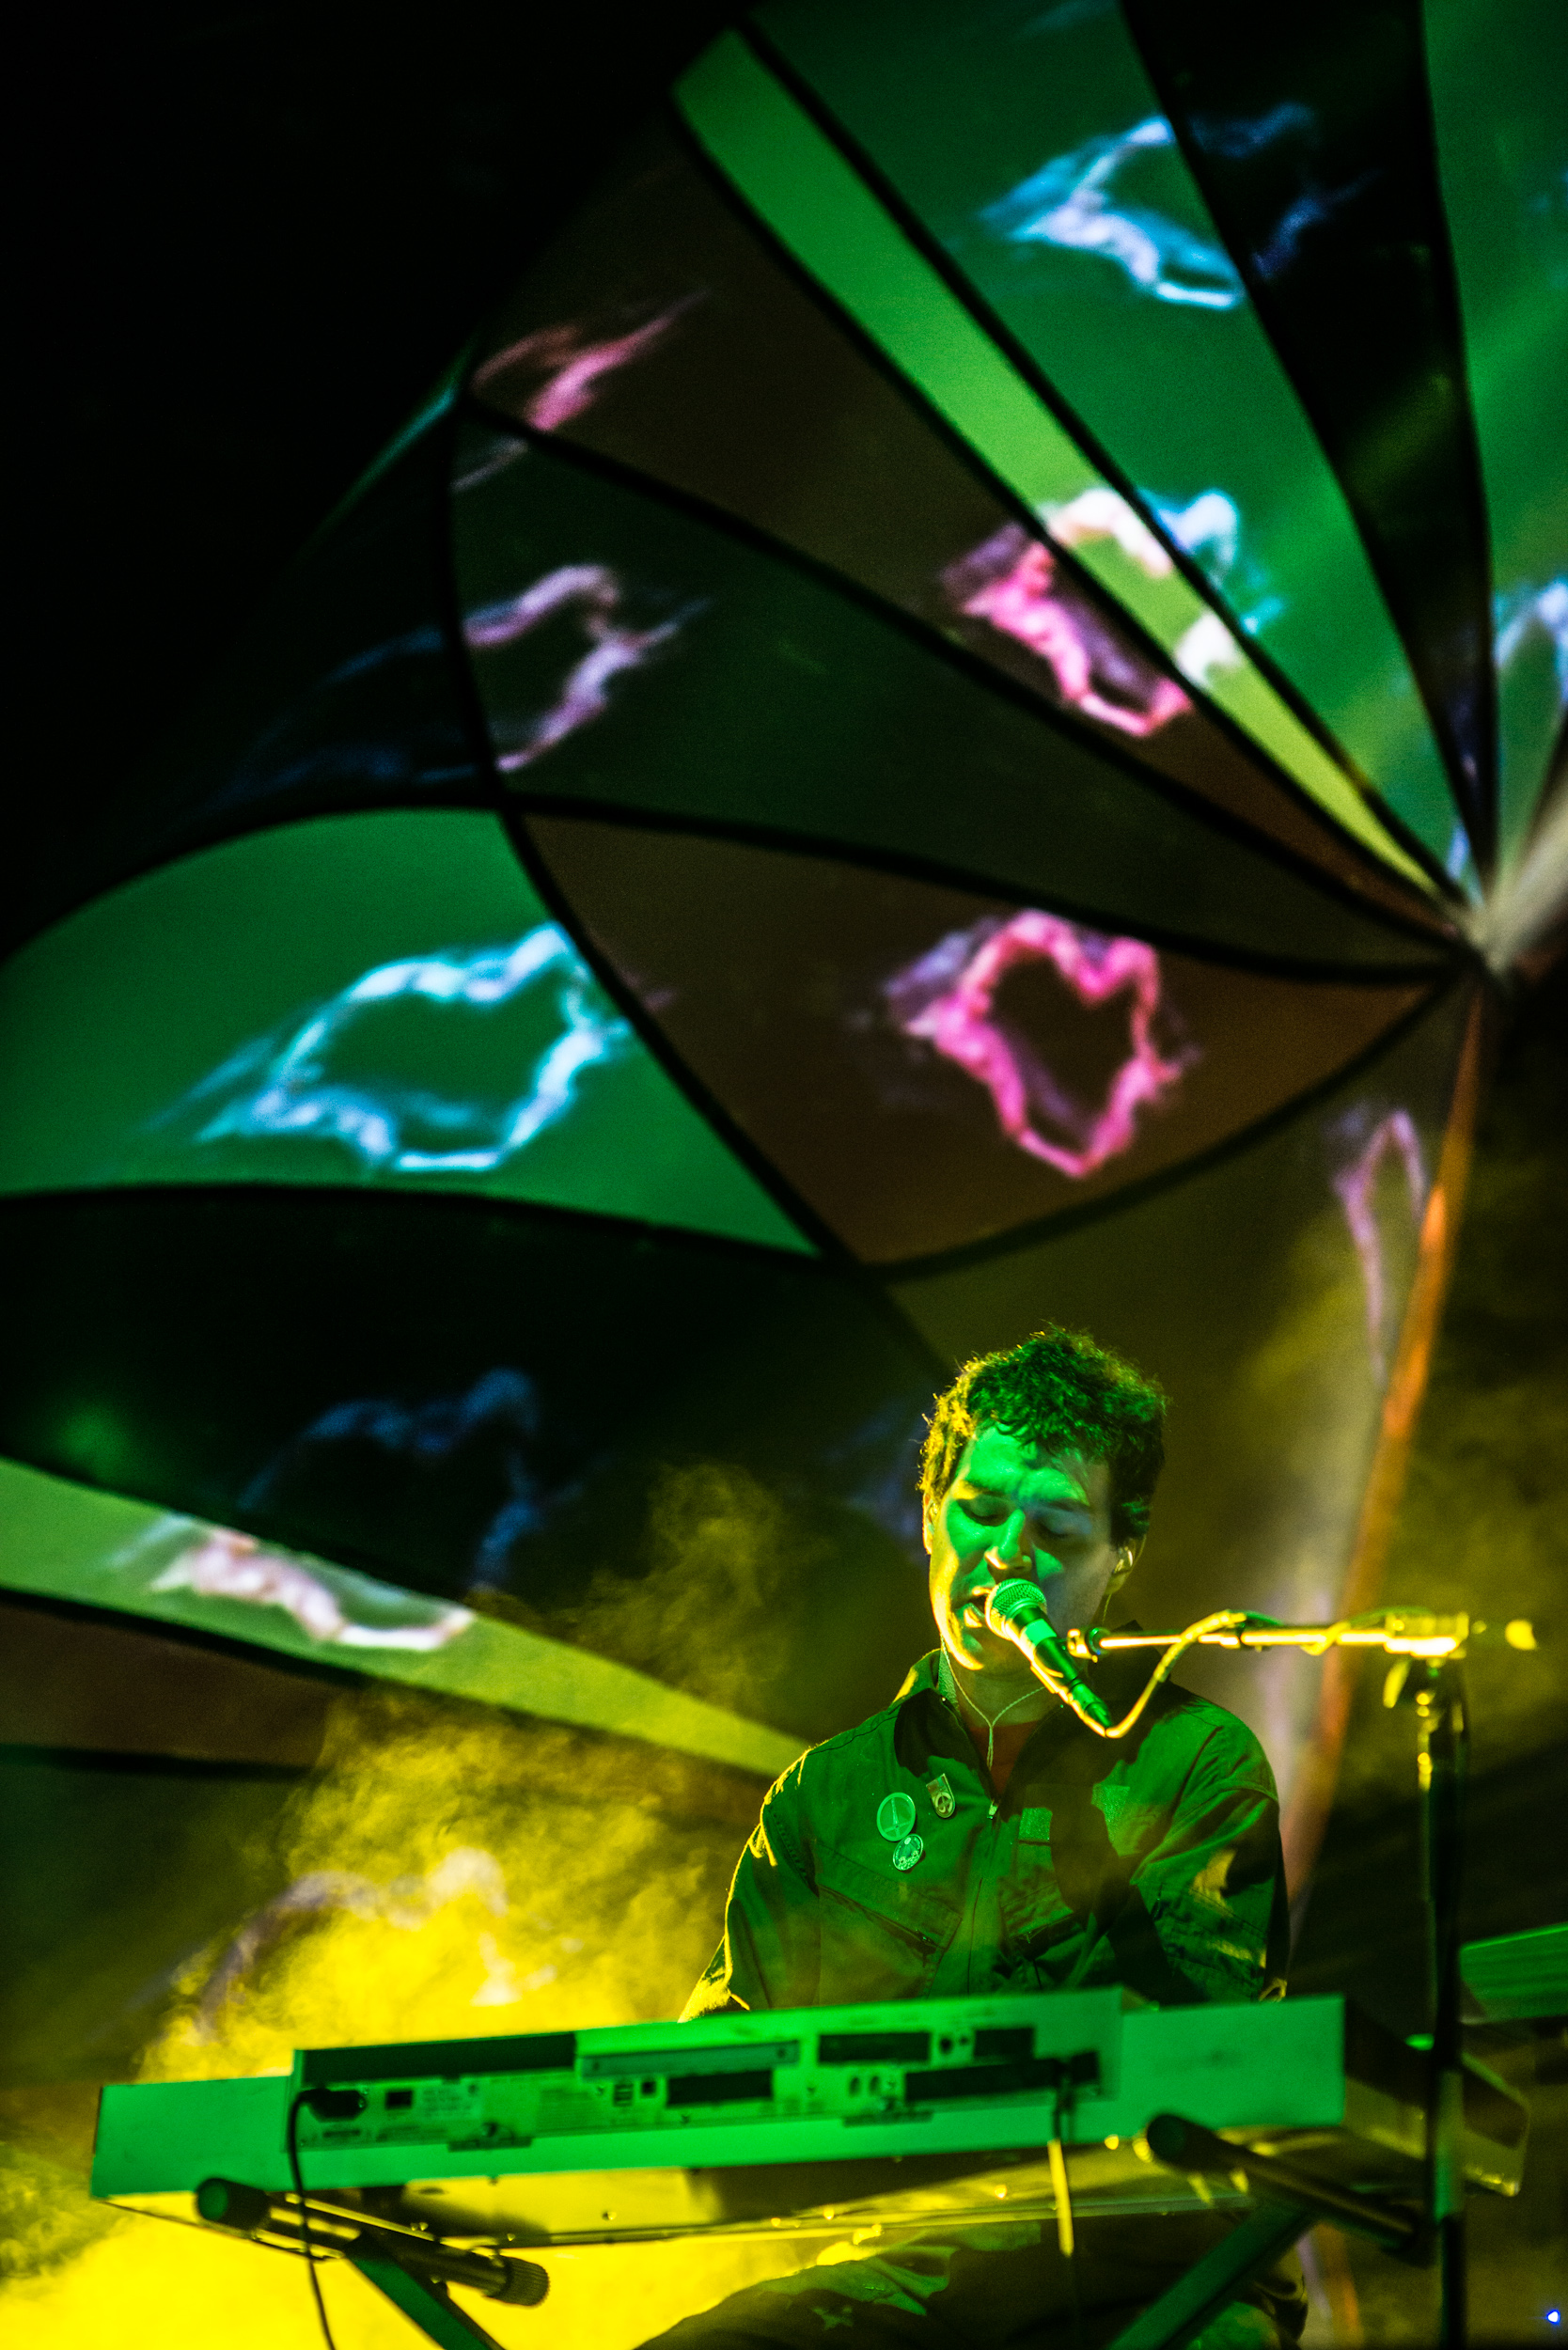 Animal Collective at The Paramount Theatre - Seattle on 2012-09-18 - _DSC8431.jpg